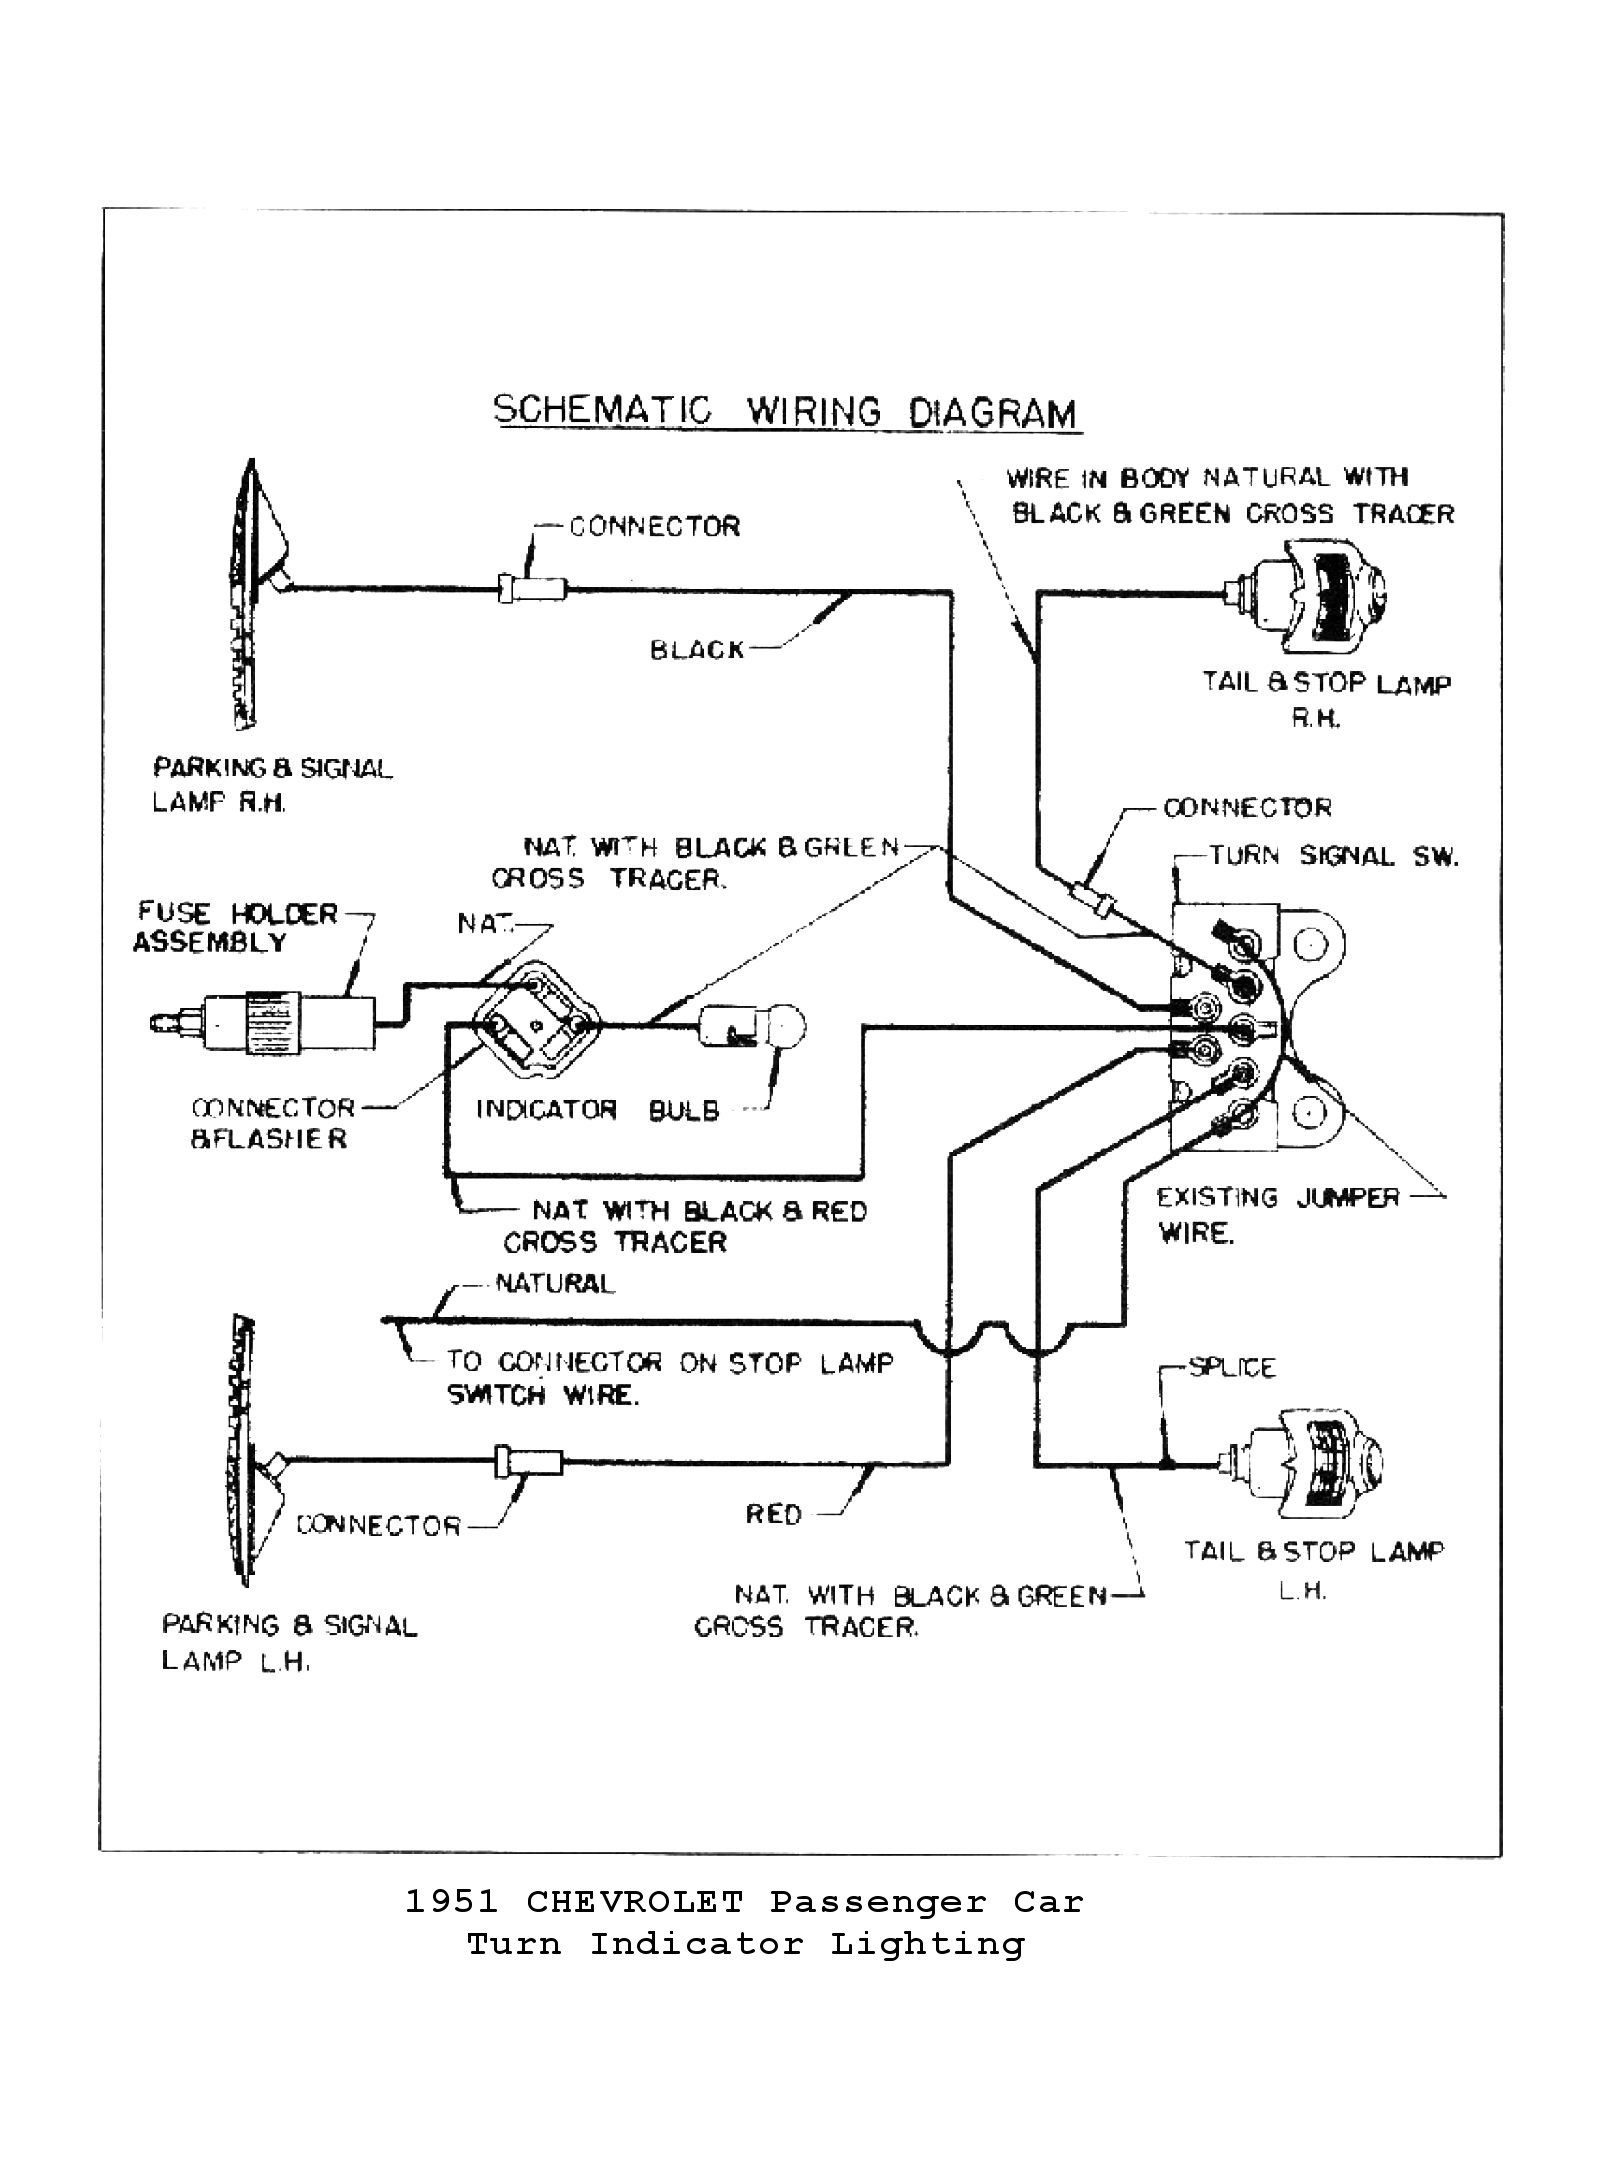 1940 Ford Wiring Diagram Free Download Schematic Worksheet And Images Gallery